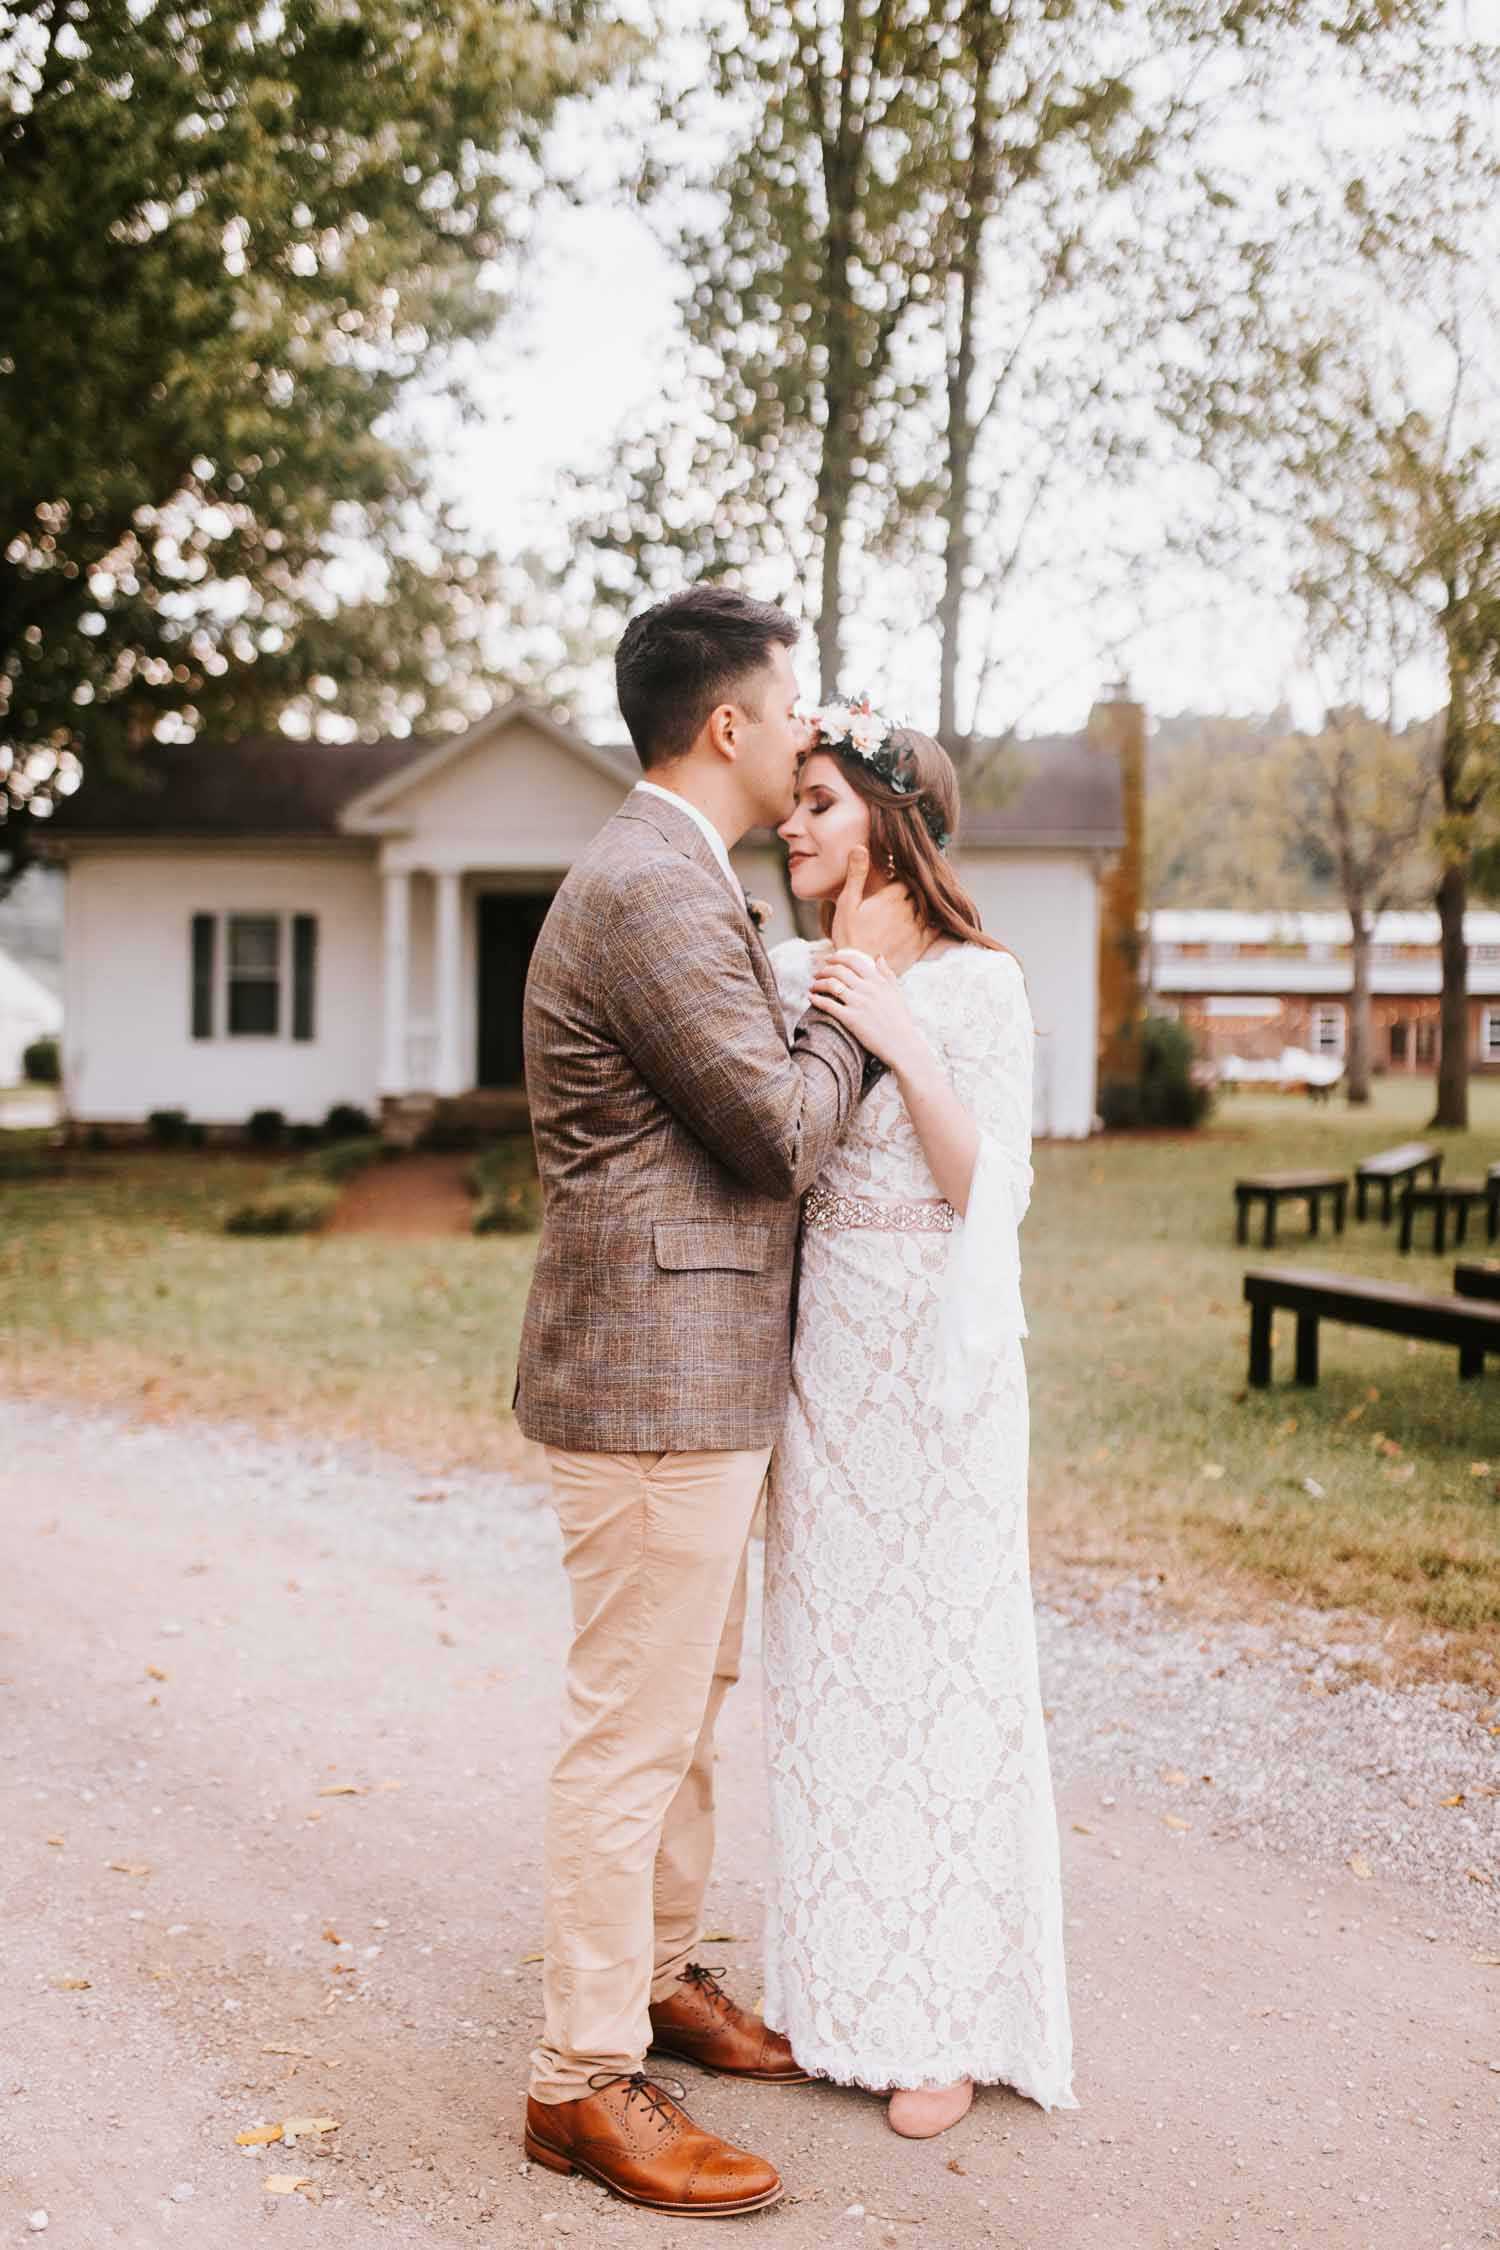 NashvilleWeddingPhotographer (10 of 44).jpg